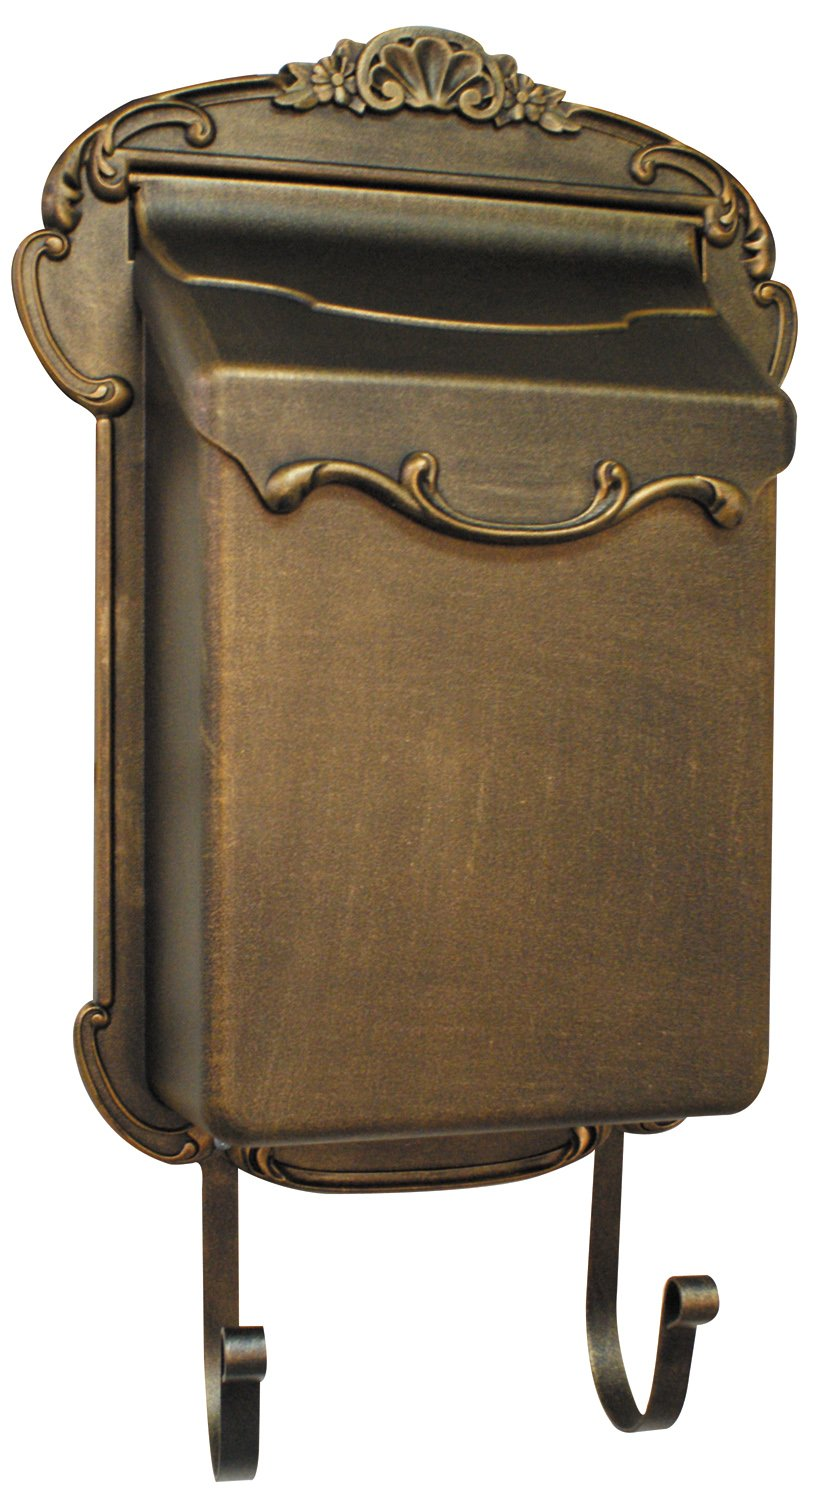 Special Lite Products SVV-1013-BR Victoria Vertical Mailbox, Bronze by Special Lite Products Company, Inc.